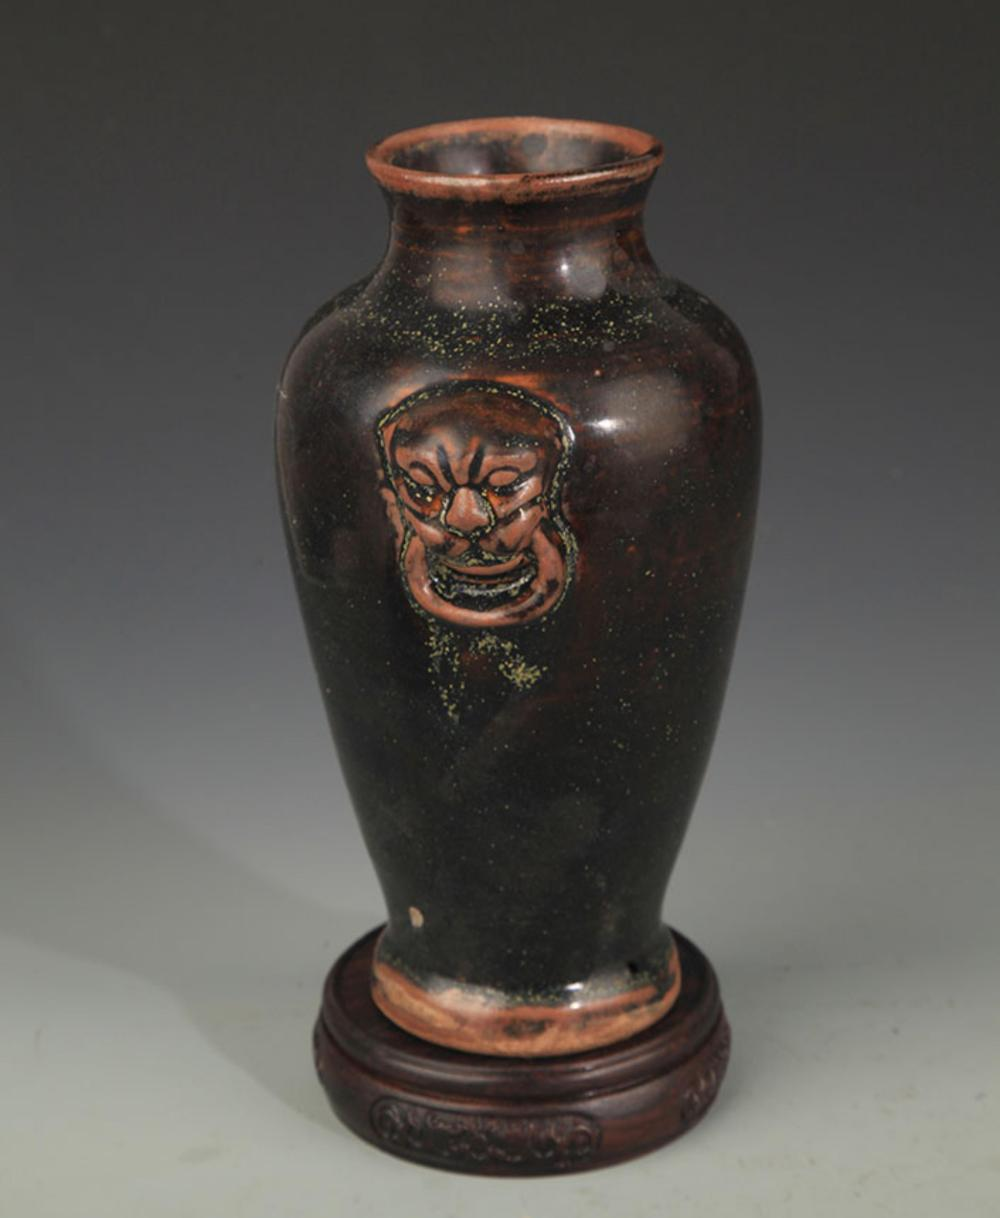 A FINE JI ZHOU KILN BLACK GLAZED PORCELAIN JAR